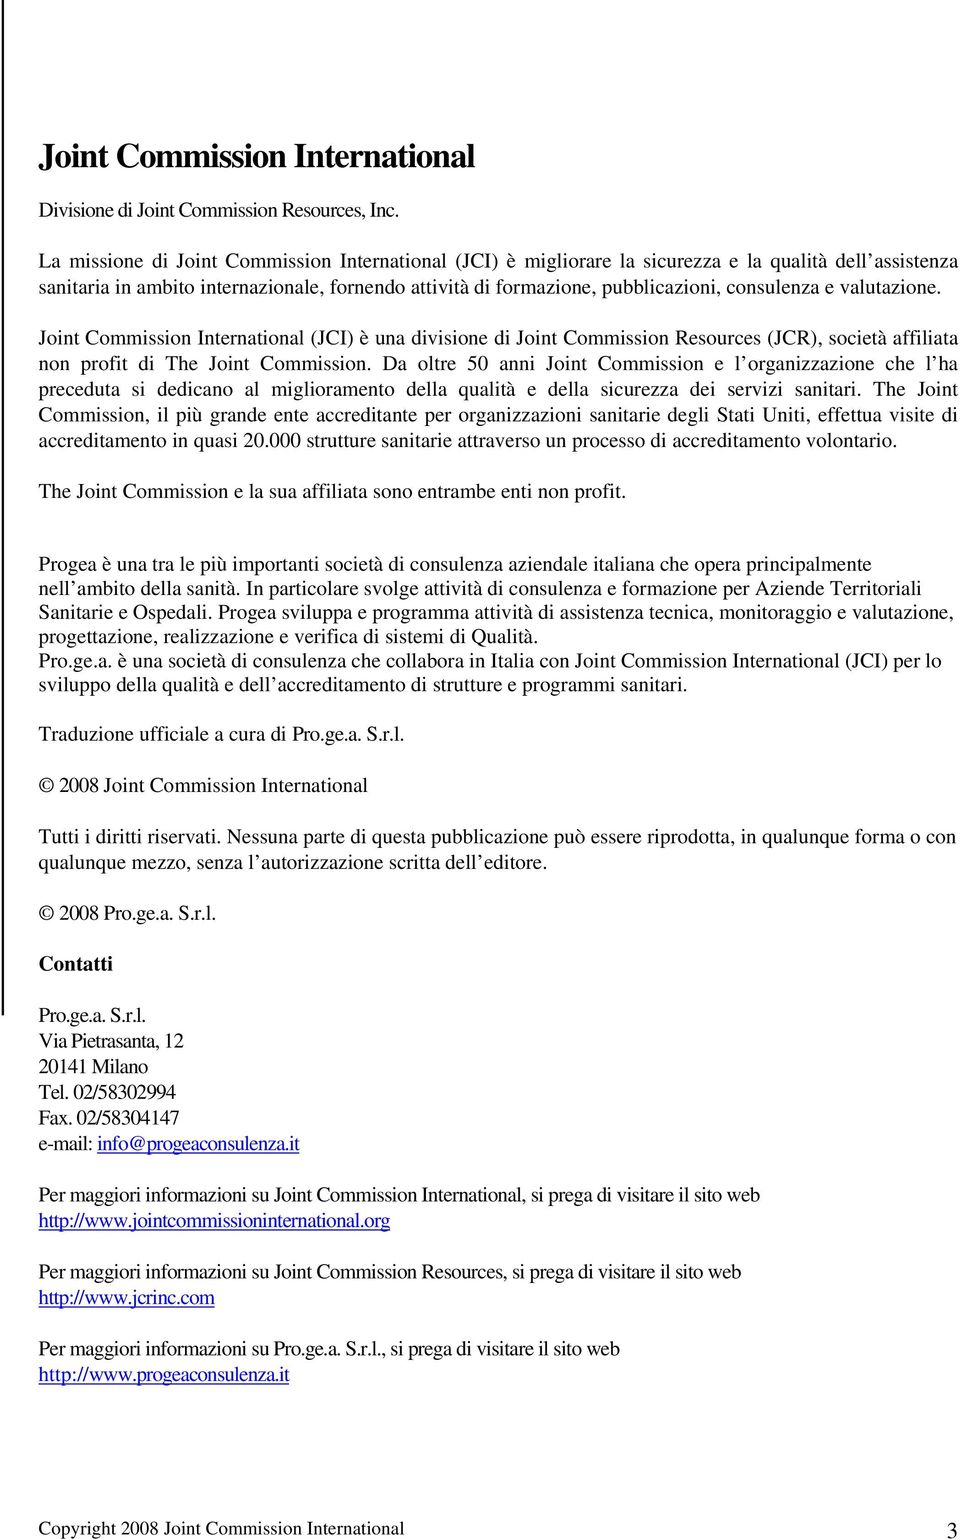 consulenza e valutazione. Joint Commission International (JCI) è una divisione di Joint Commission Resources (JCR), società affiliata non profit di The Joint Commission.